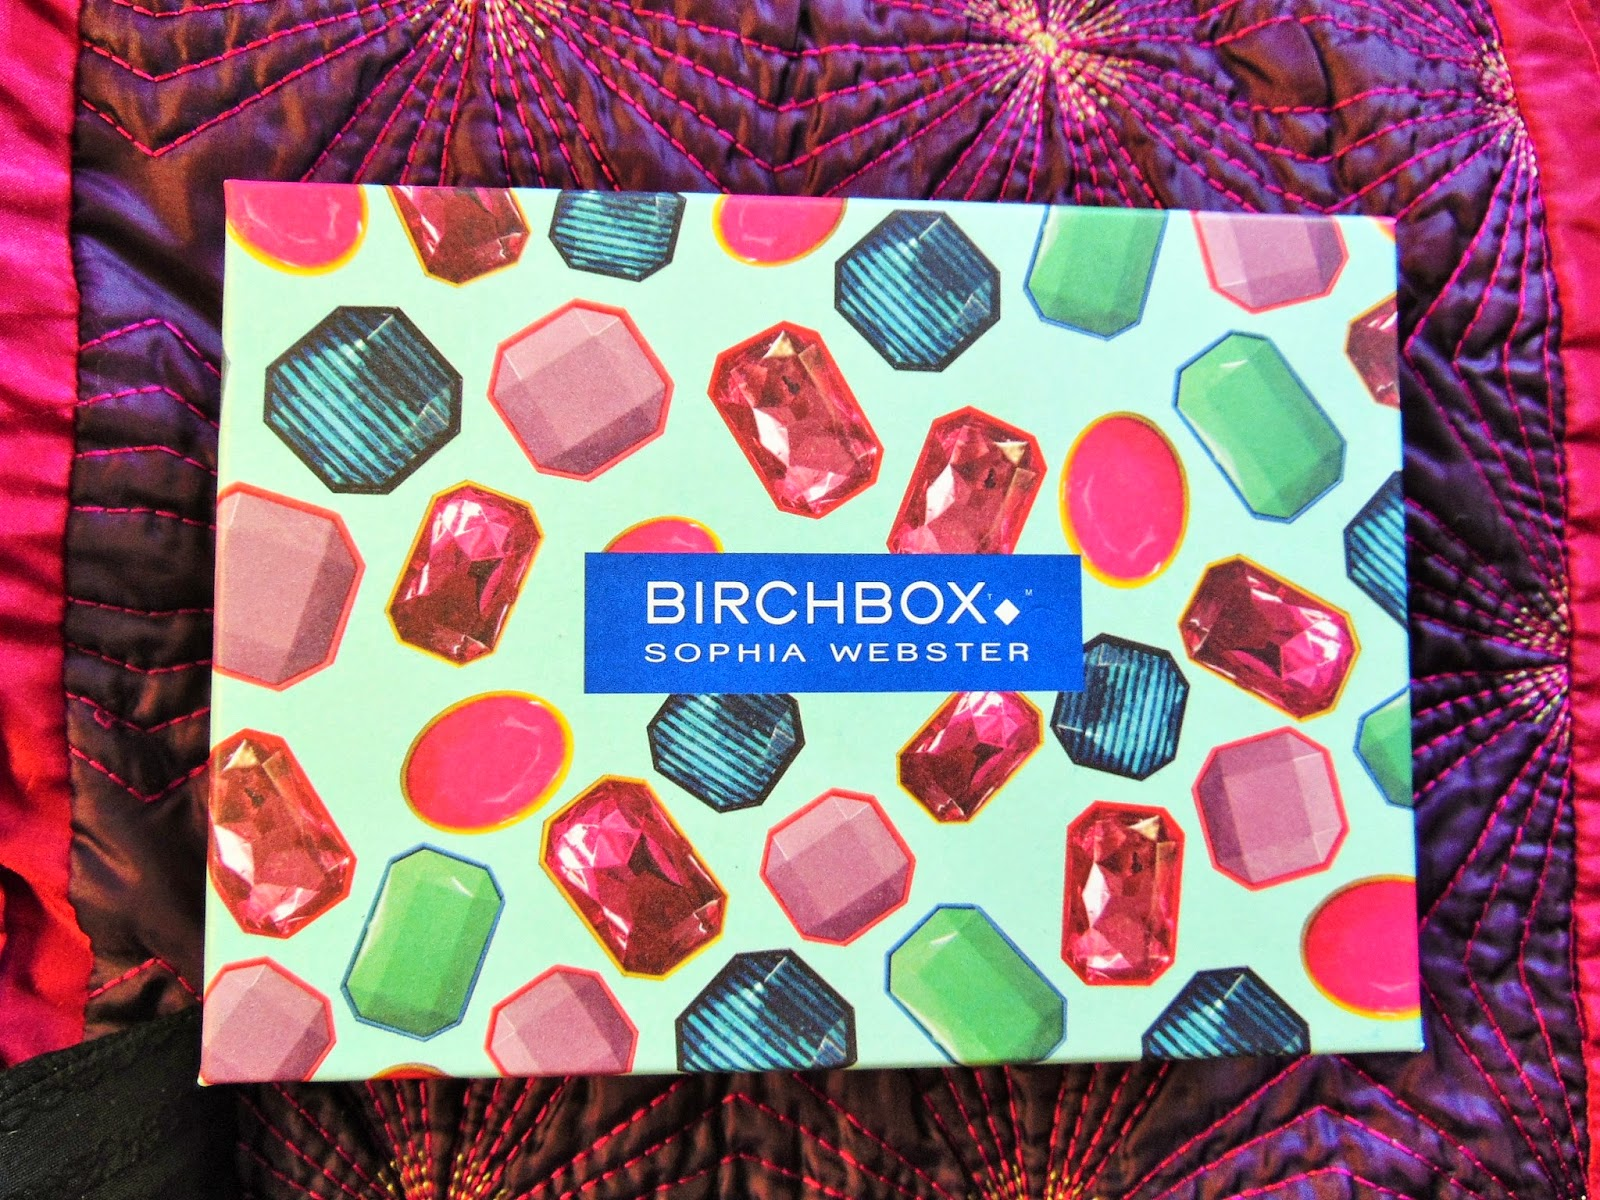 Birchbox opening and review Sophia Webster edition